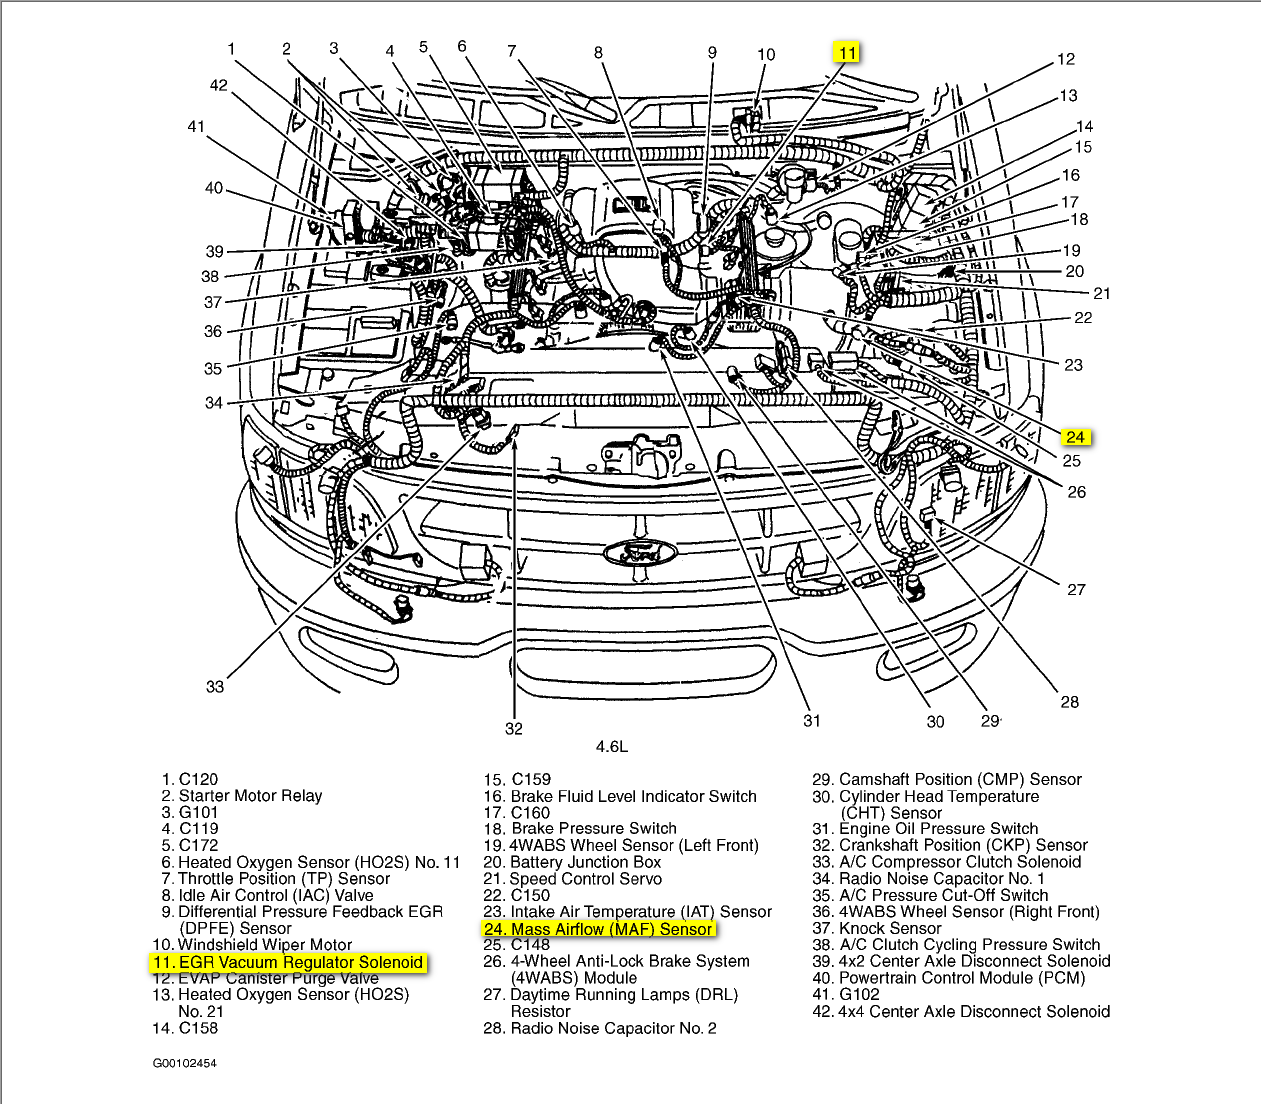 Ford F 150 4 6l Engine Diagram Guide And Troubleshooting Of Wiring 2002 F150 On My 2001 Check Soon Light Is 2005 Expedition